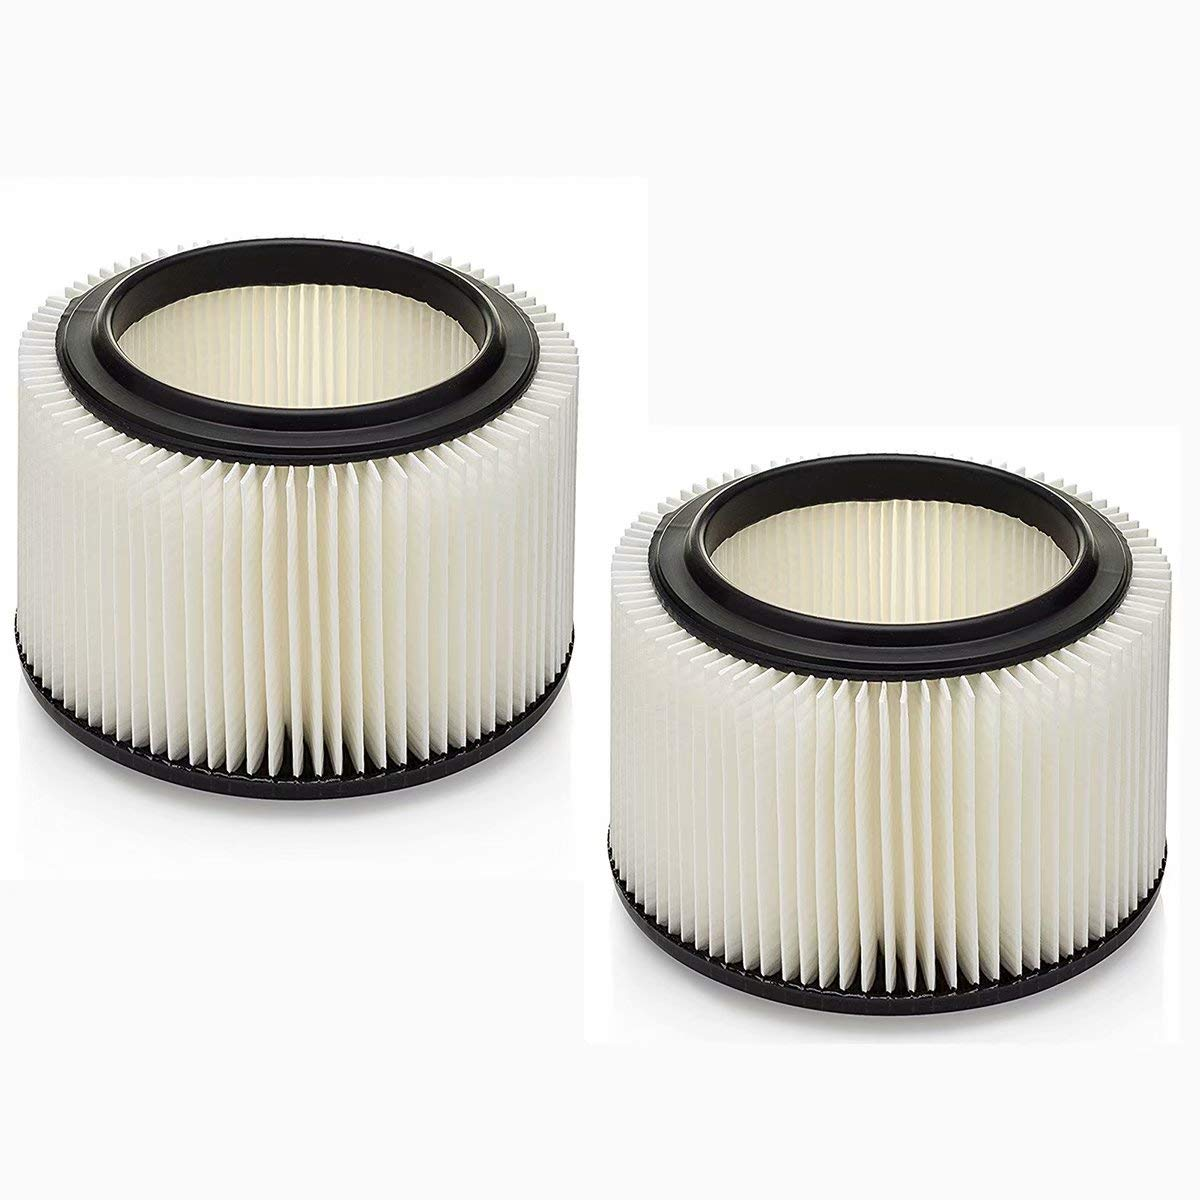 ANBOO Filter for Craftsman General Purpose 3 & 4 Gallons Cartridge Filter Replacement Wet/Dry Vac Vacuum Filter Fit Craftsman Part 917810 2 Pack